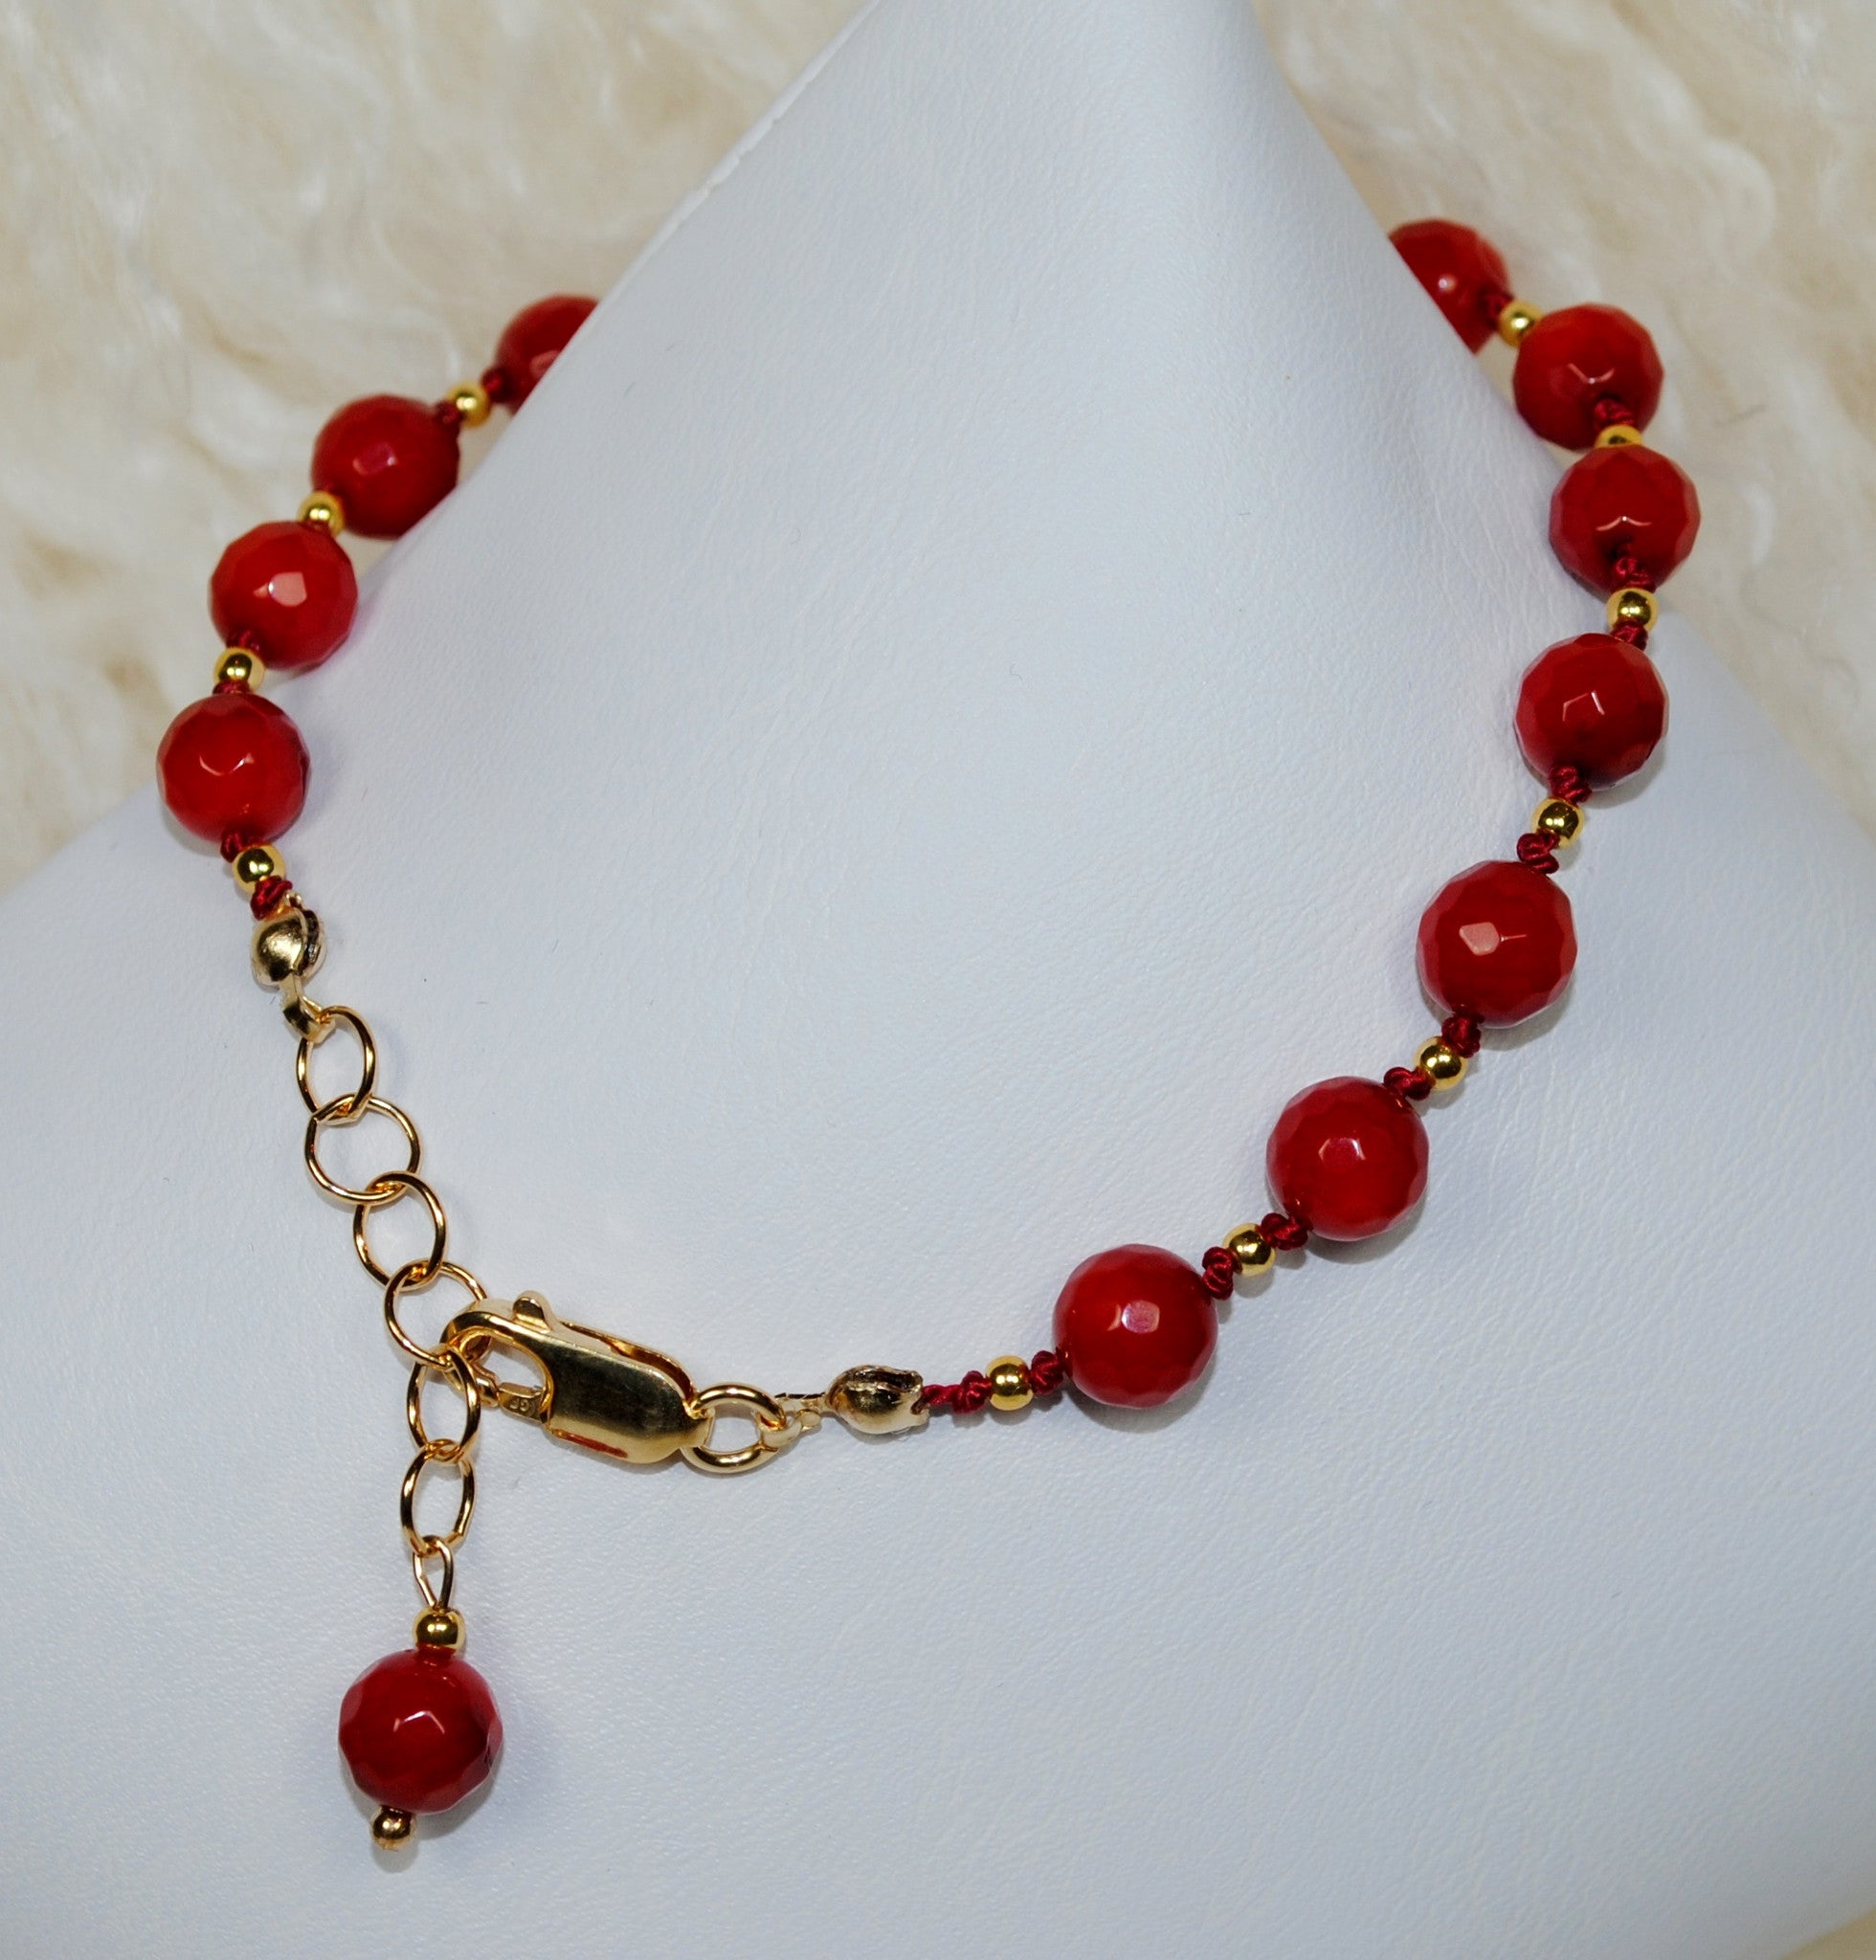 Red & Gold 'Giving Back' Bracelet - Large Bead